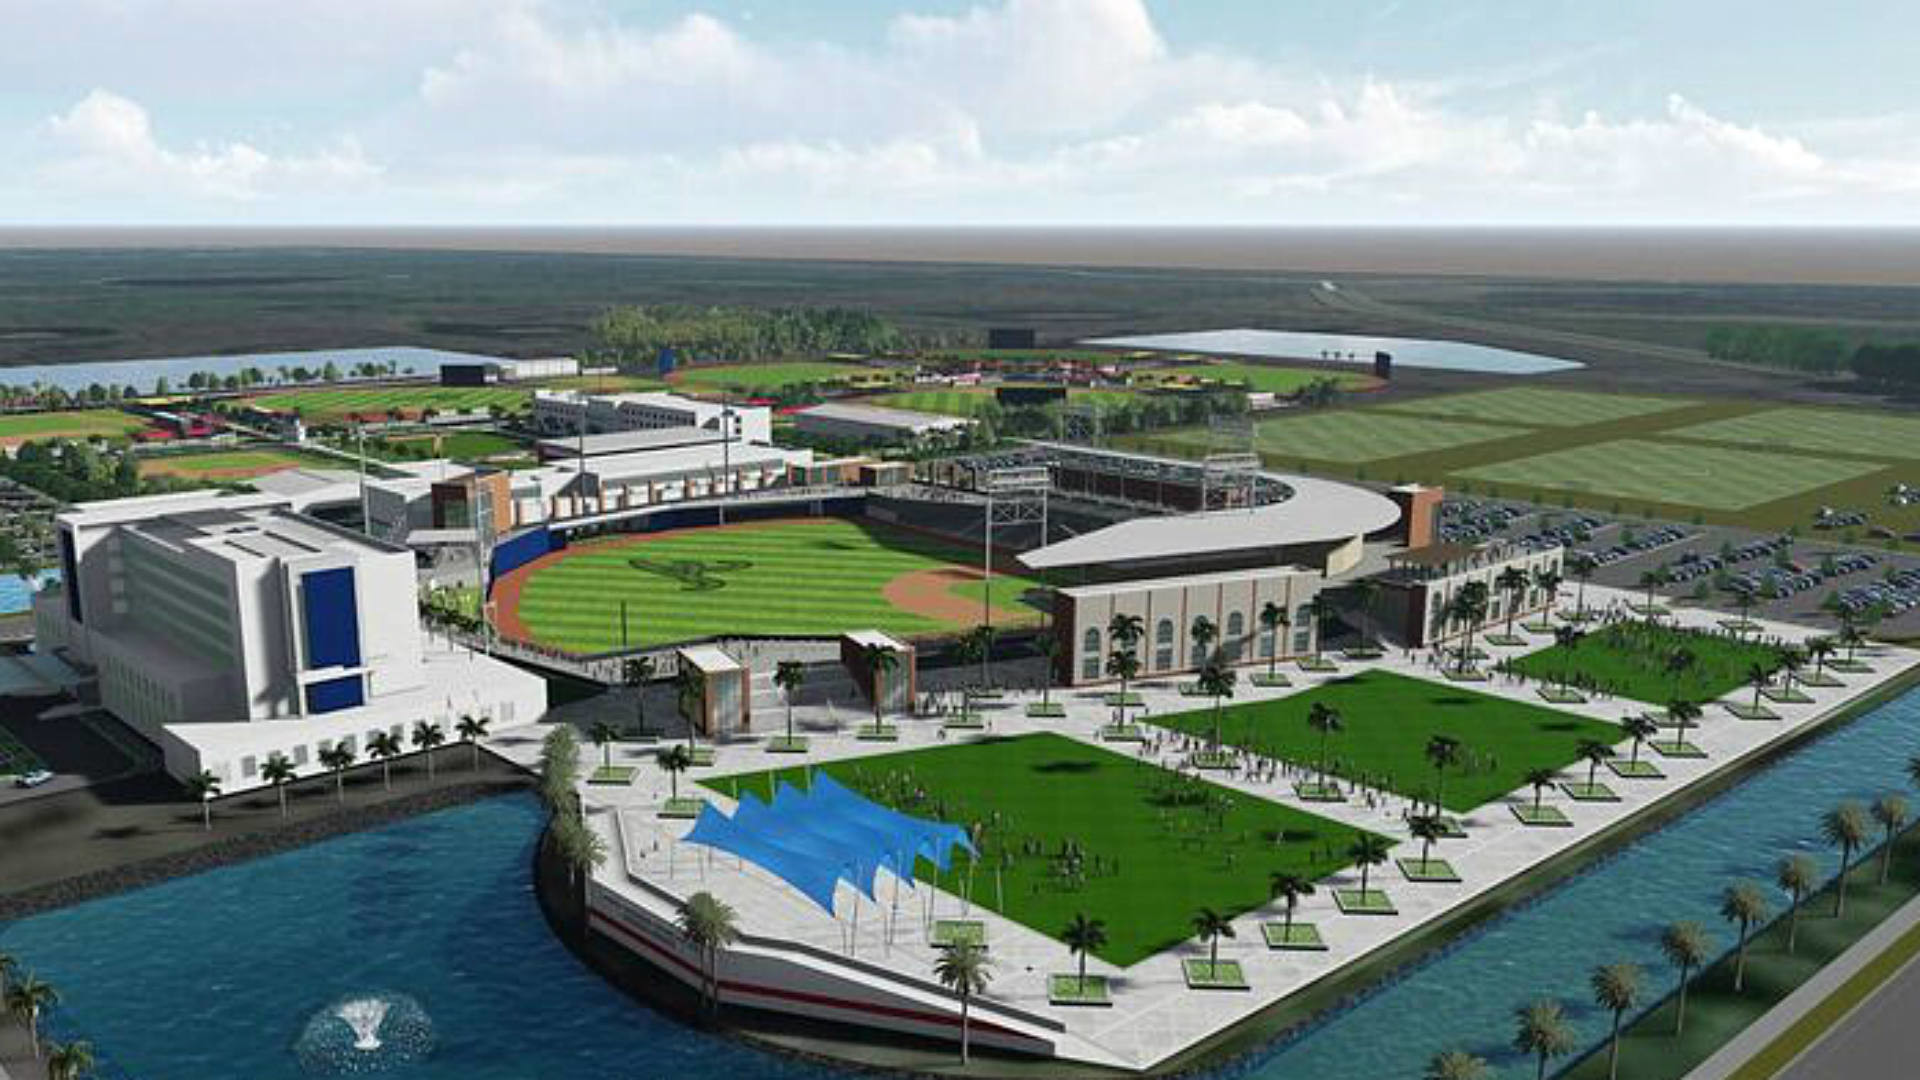 Braves move ahead with prospective spring training site in Sarasota | MLB |  Sporting News